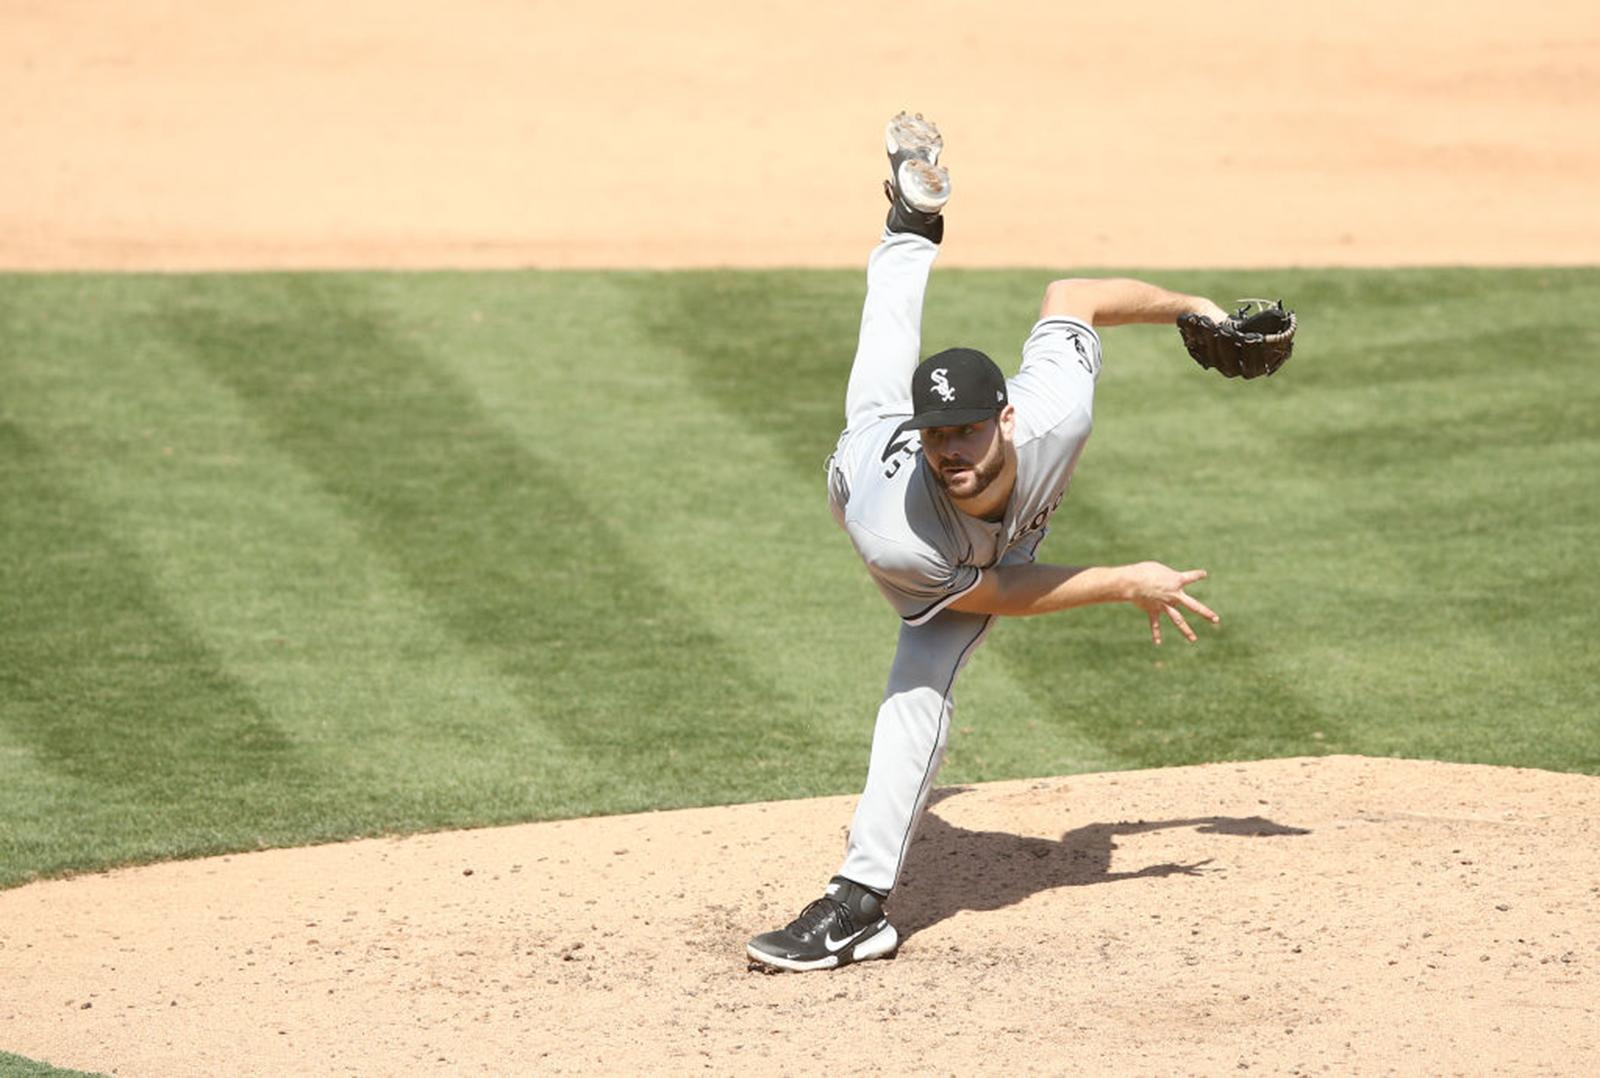 Lucas Giolito's 7-plus innings of 2-hit ball lift the White Sox to a 4-1 win over the A's in Game 1 of the best-of-3 AL wild-card series